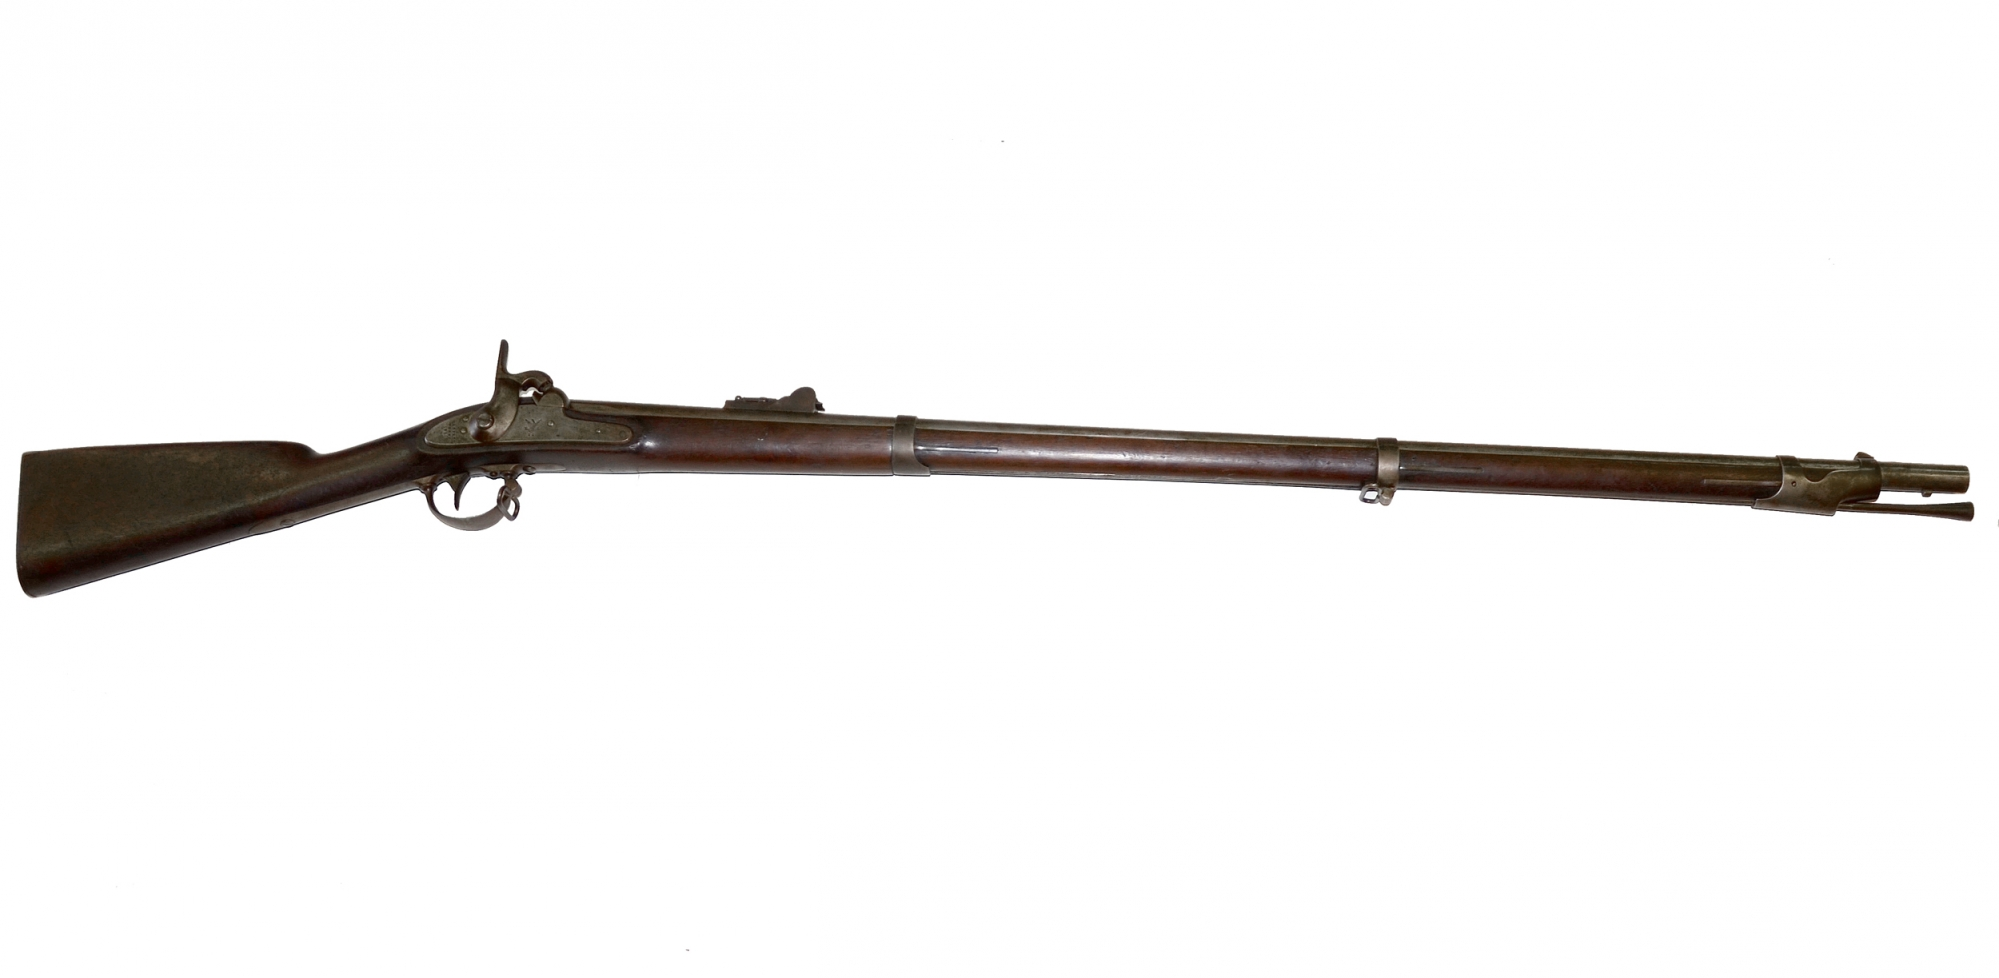 U.S. MODEL 1842 HARPERS FERRY RIFLED MUSKET